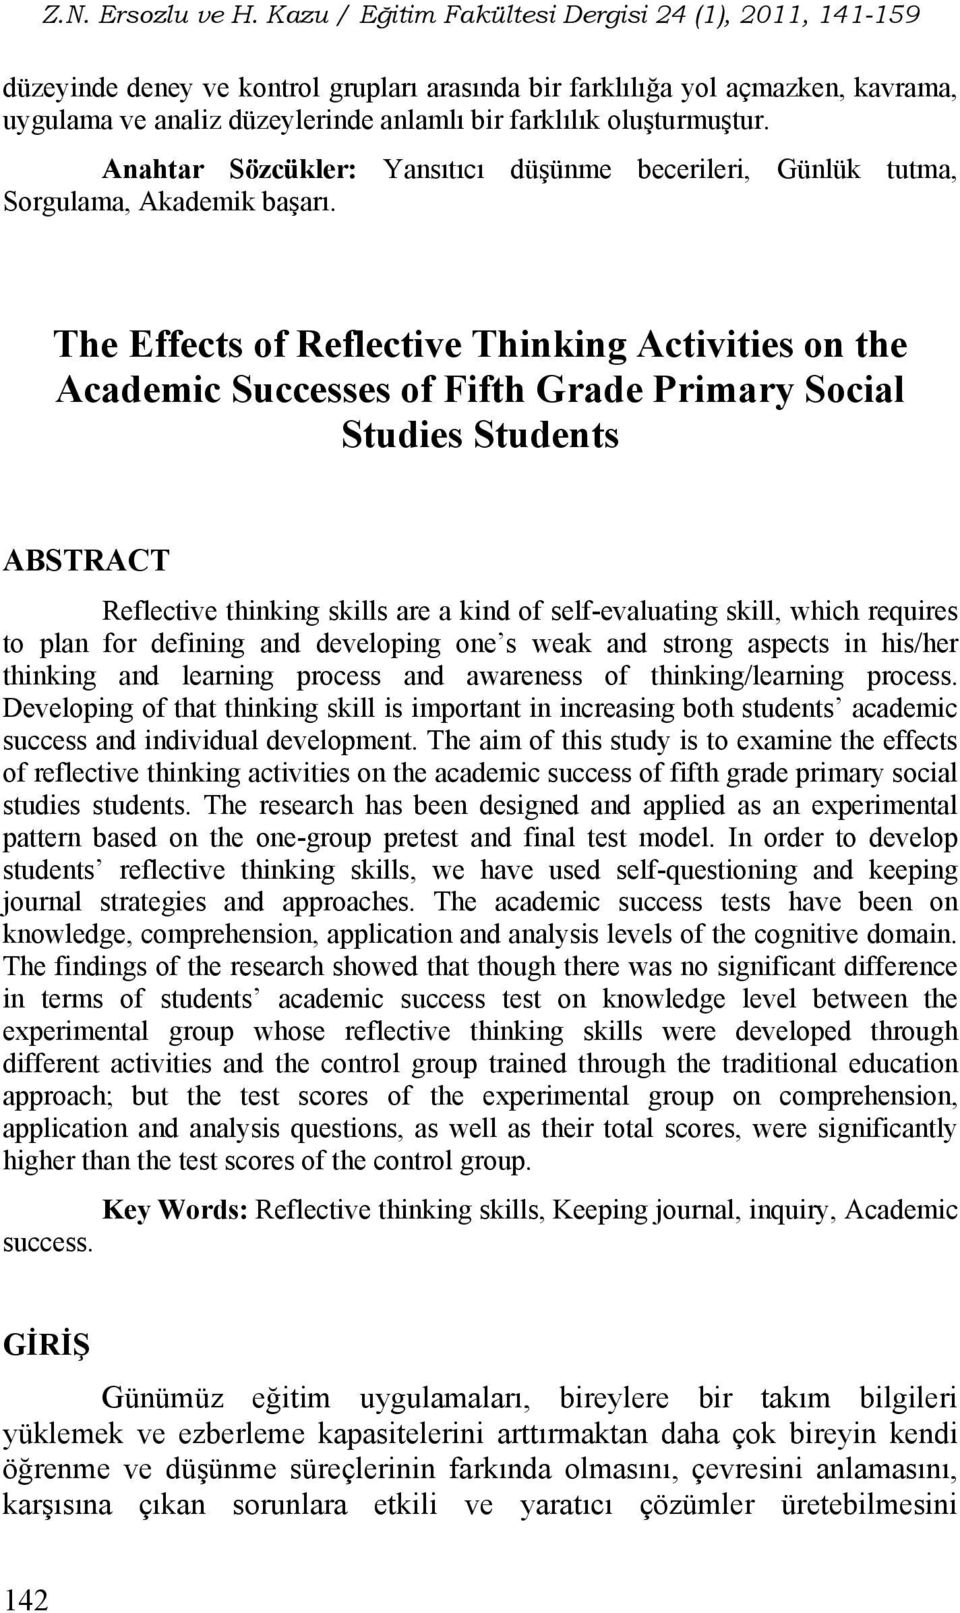 The Effects of Reflective Thinking Activities on the Academic Successes of Fifth Grade Primary Social Studies Students ABSTRACT Reflective thinking skills are a kind of self-evaluating skill, which